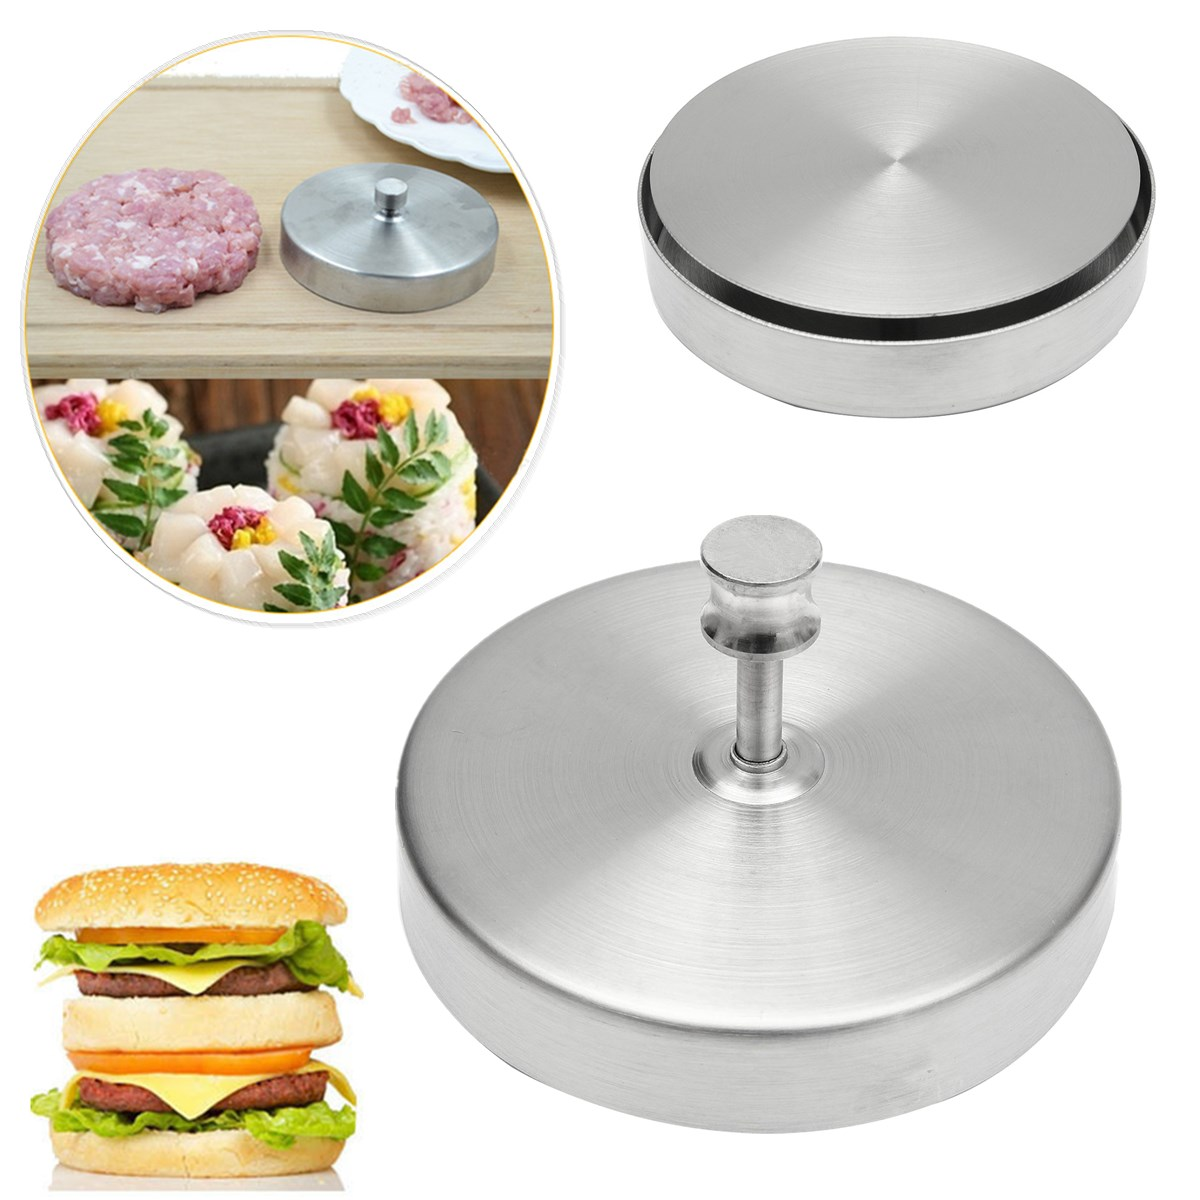 Stainless Steel Hamburger Press Patties Pizza Maker Household Kitchen Meat  Making Cooking Tools Patty Burger Meat